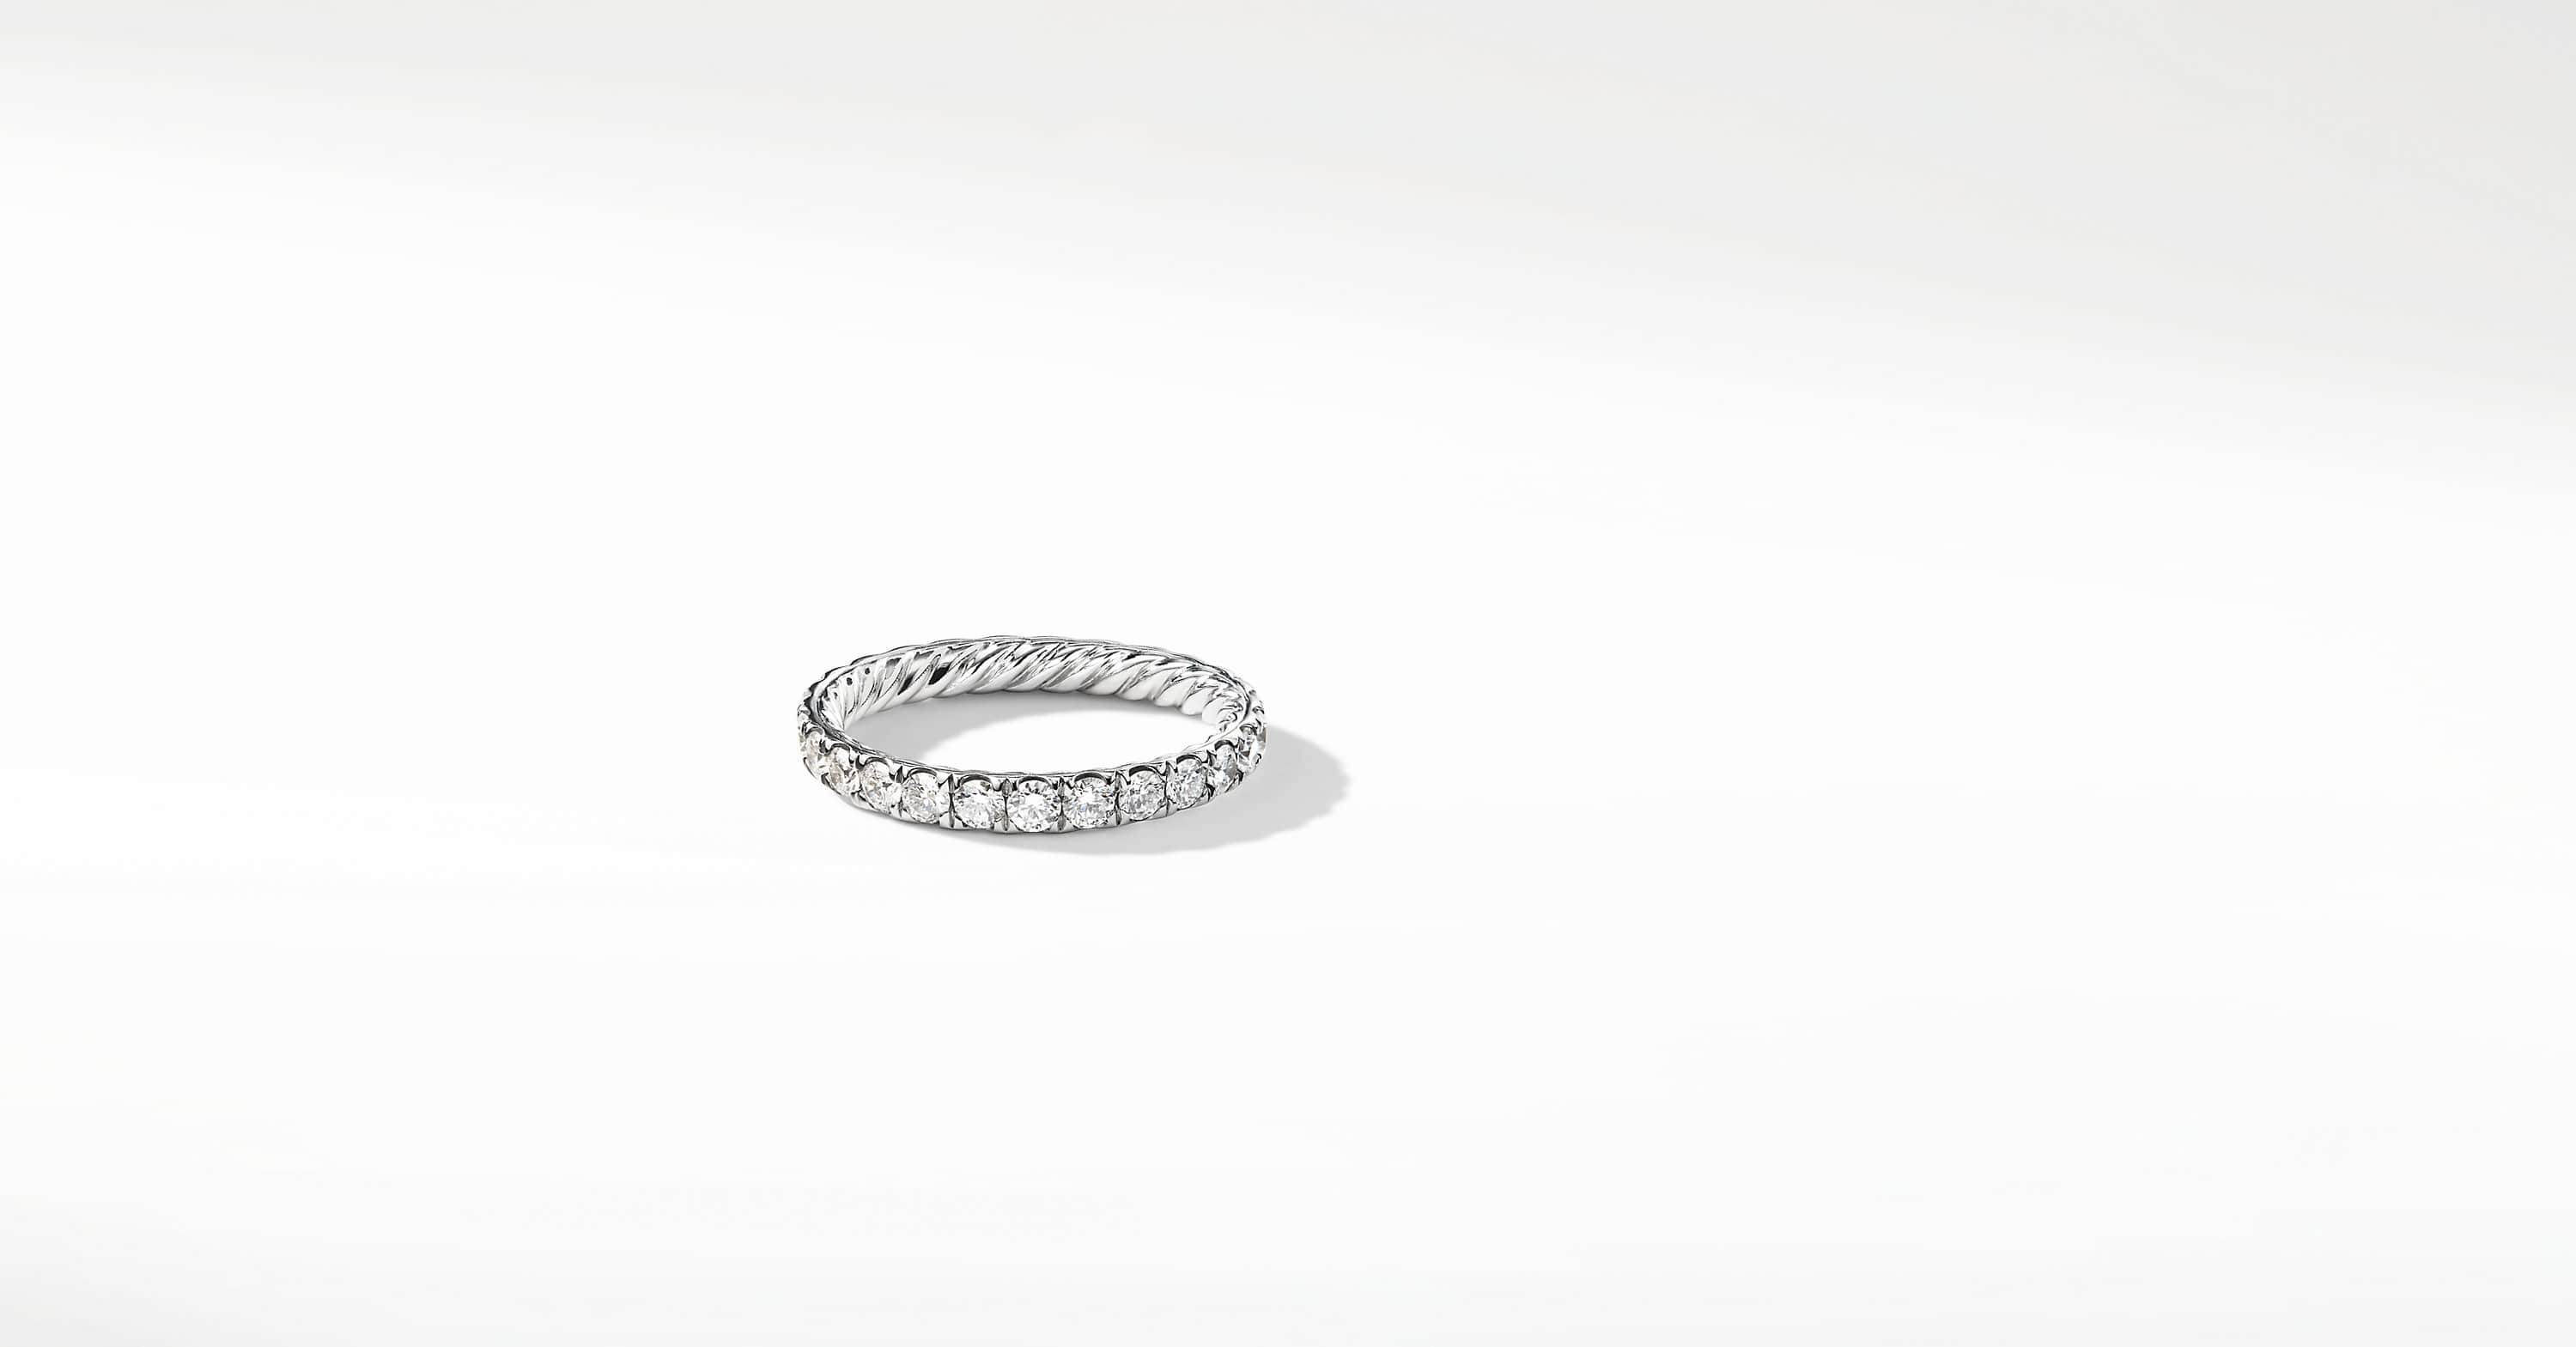 Alliance DY Eden à un rang unique en platine avec diamants, 2,8 mm